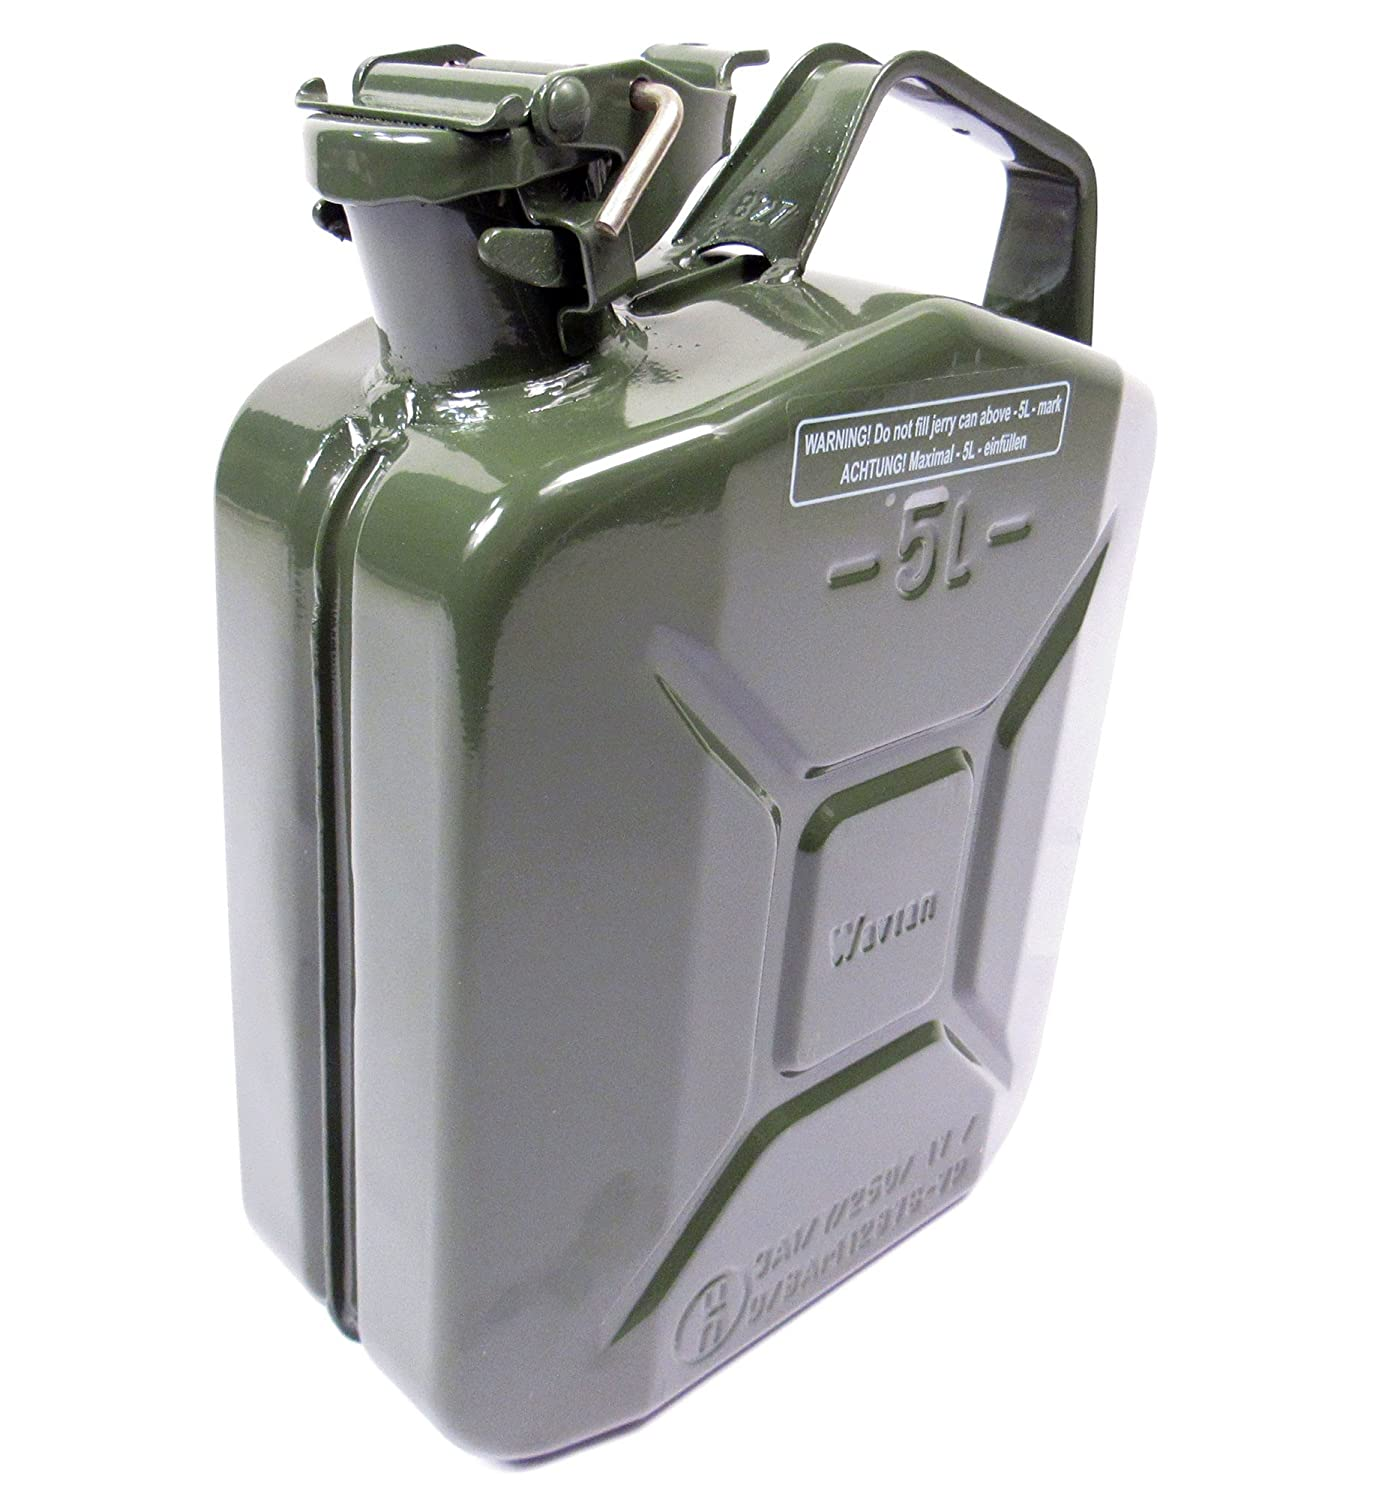 VALPRO 5 Liter (1.25 Gallon) NATO Jerry Can - Built to Military Spec